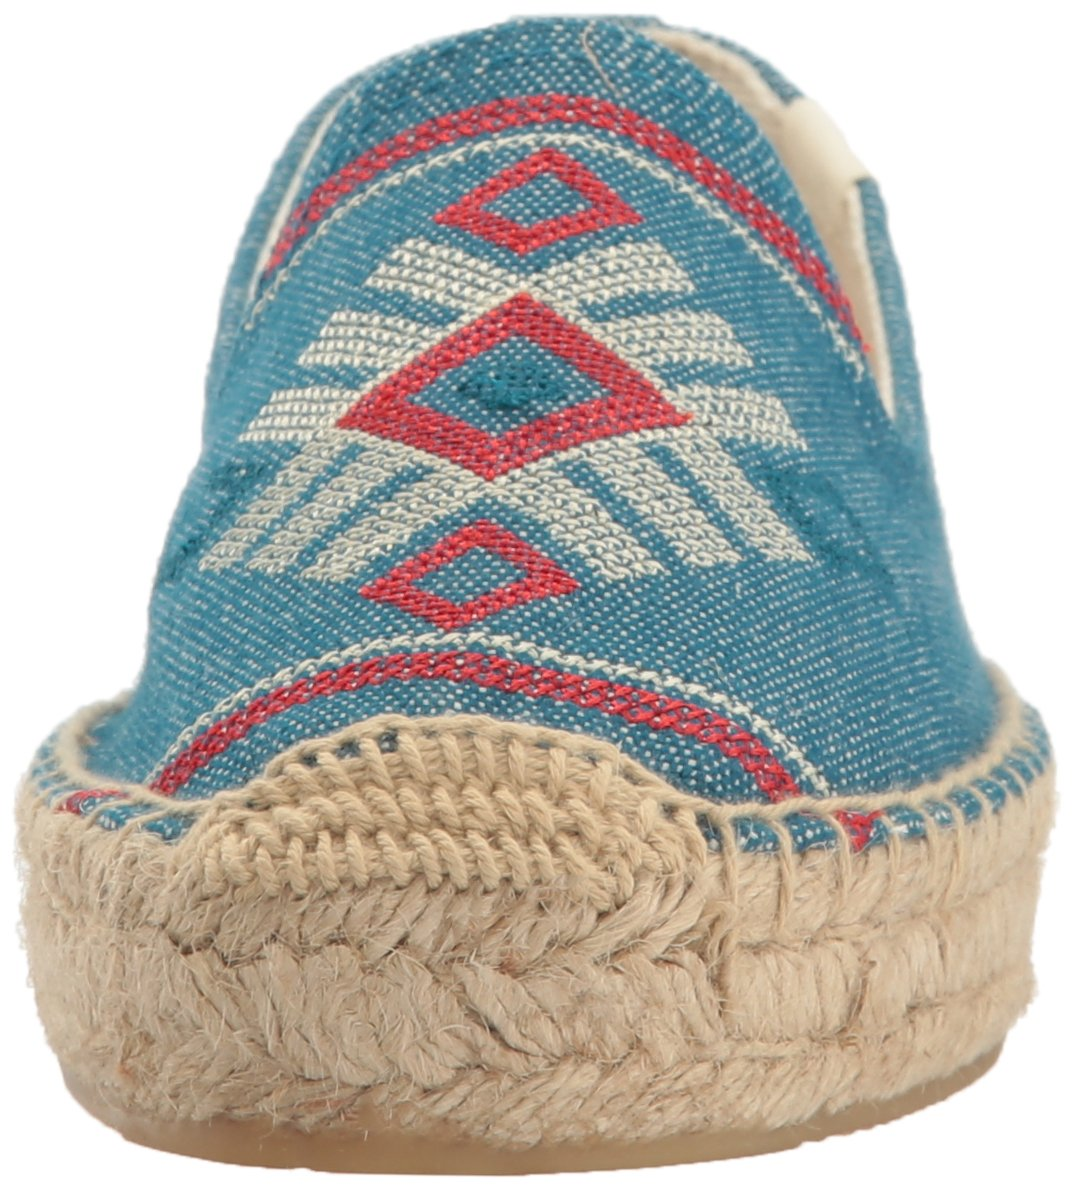 Soludos Women's Yucatan Smoking Slipper Flat B01N8P71S2 10 B(M) US|Ocean Blue